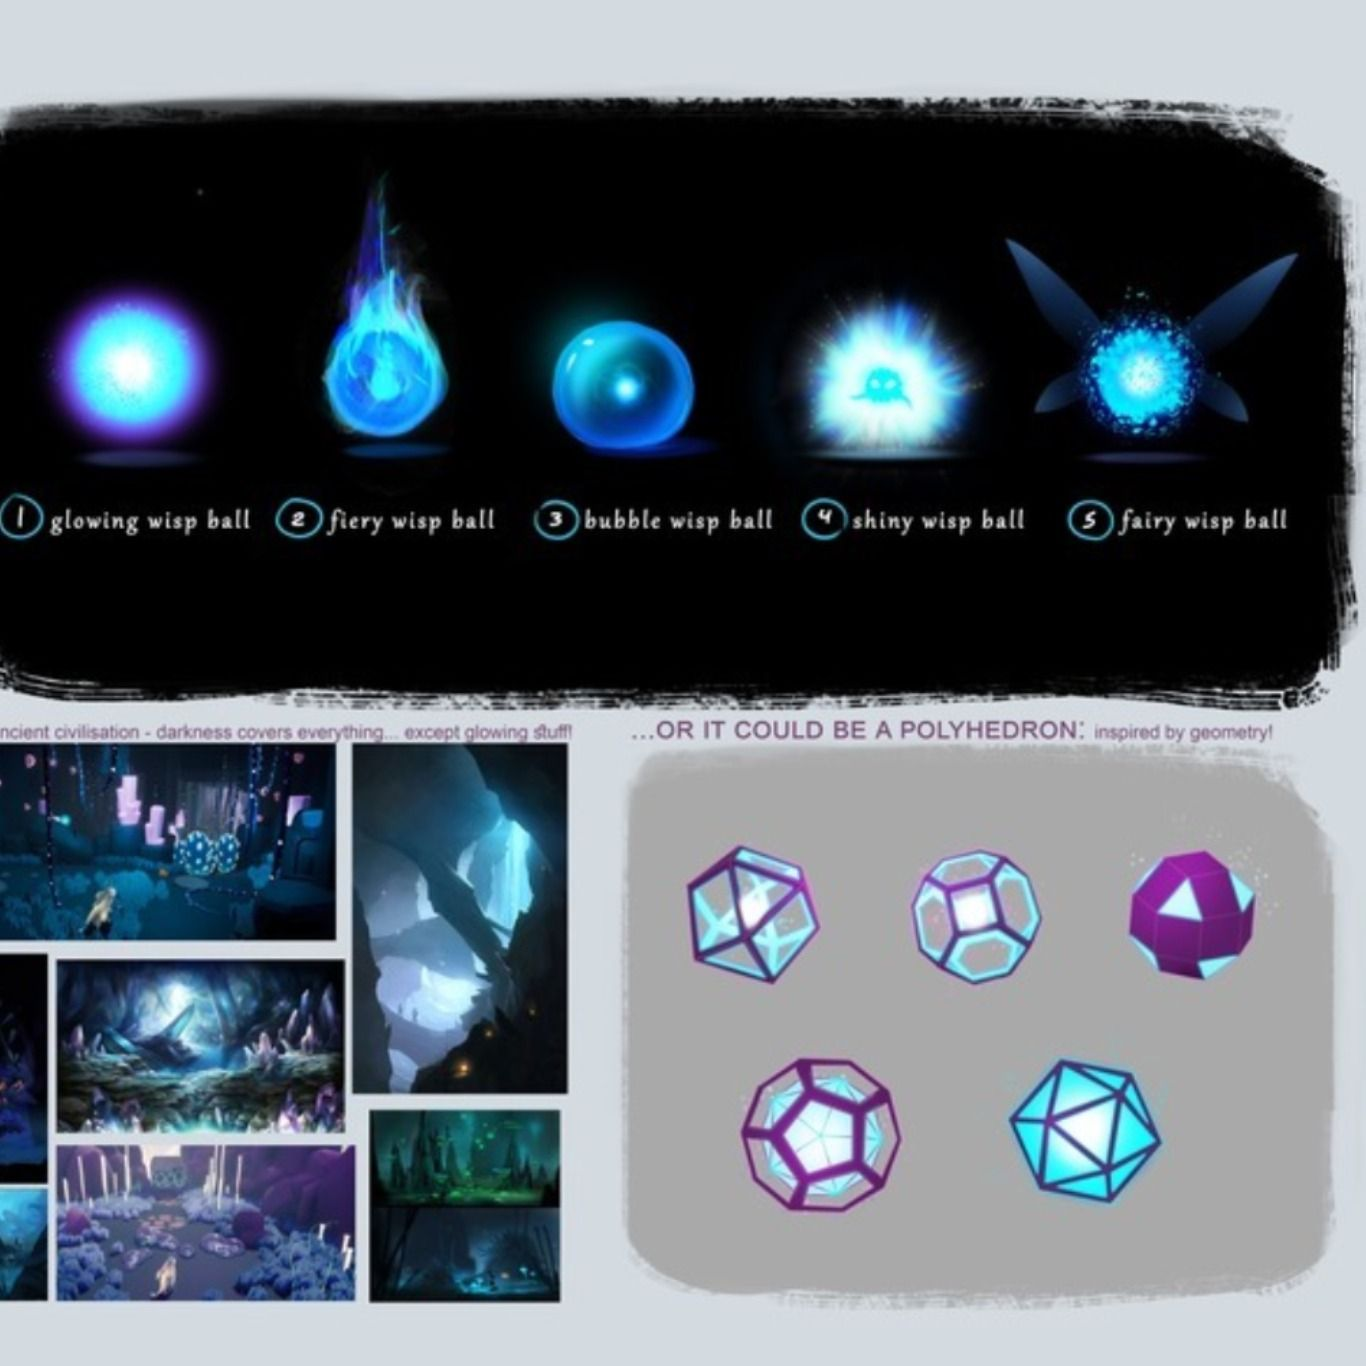 Character concept art and environment concepts for hyper